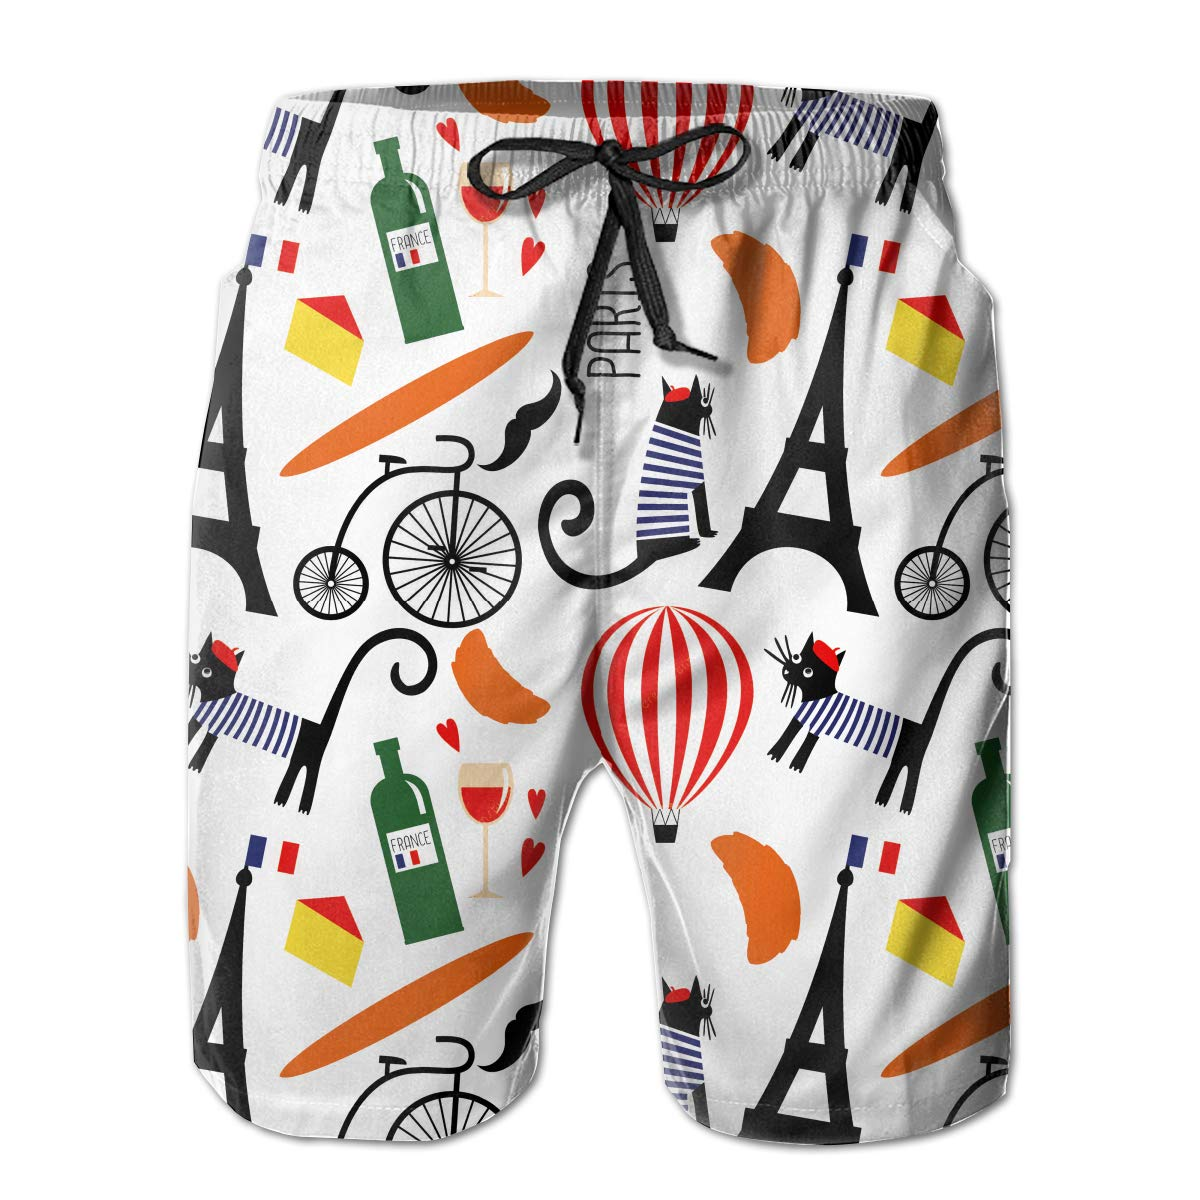 JIAU HUA French Culture Symbols Pattern Mens Quick Dry Swim Trunks Casual Beach Shorts with Lining Skateboard Shorts